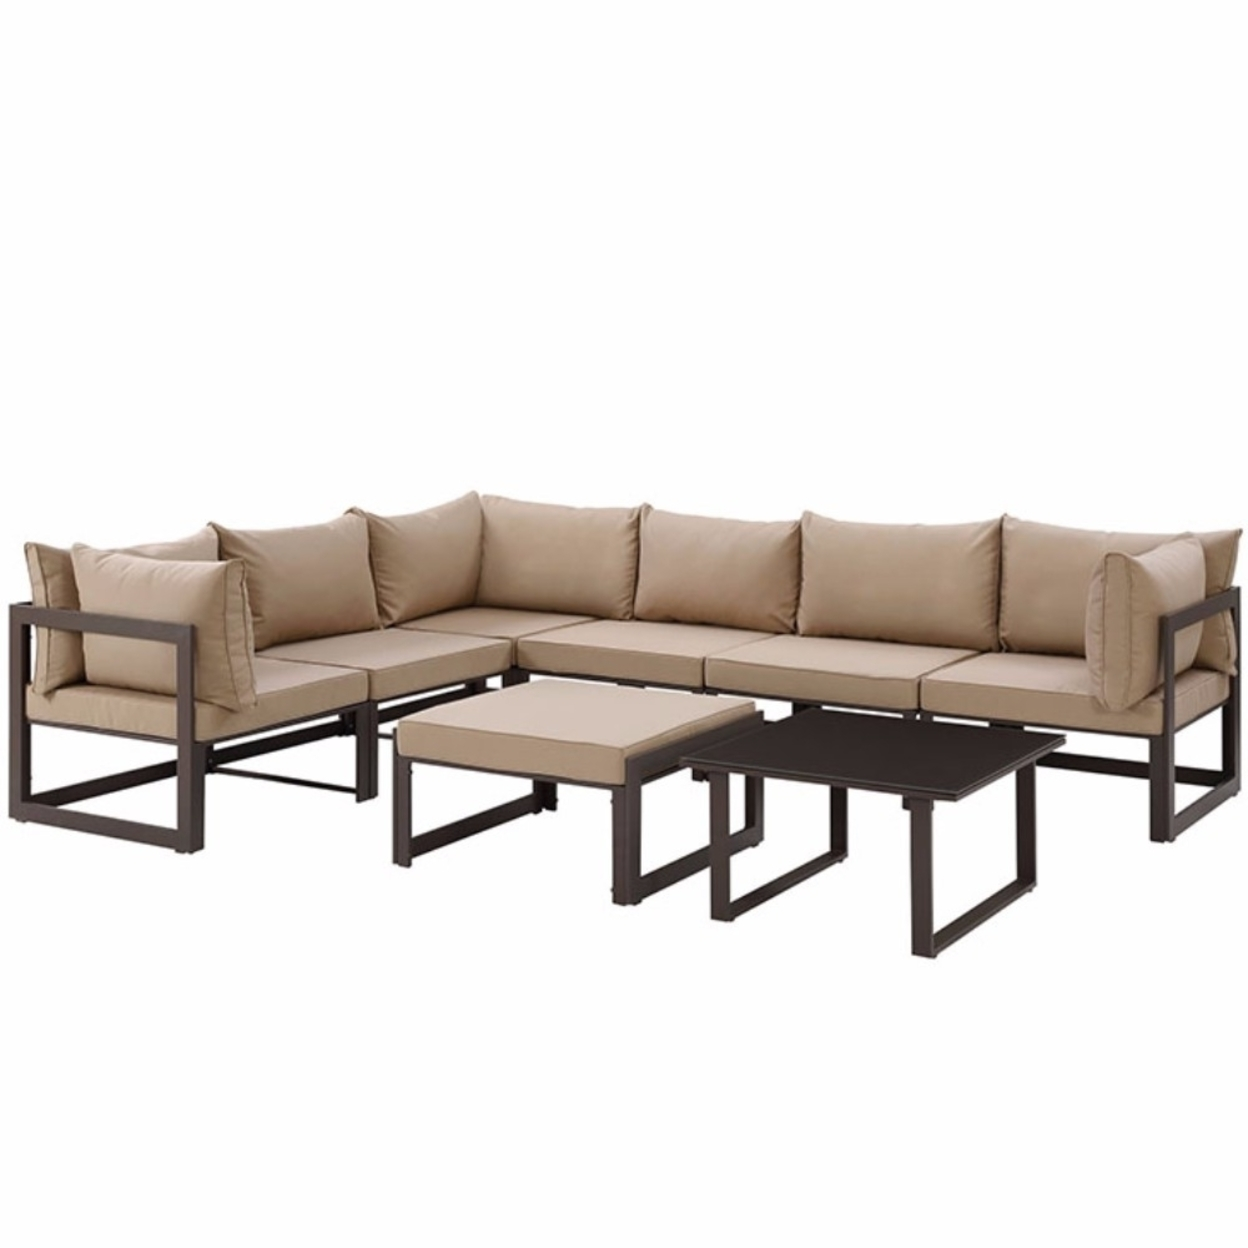 Fortuna 8 Piece Outdoor Patio Sectional SofaSet , Brown Mocha 59bf6a3de22461649a11226a